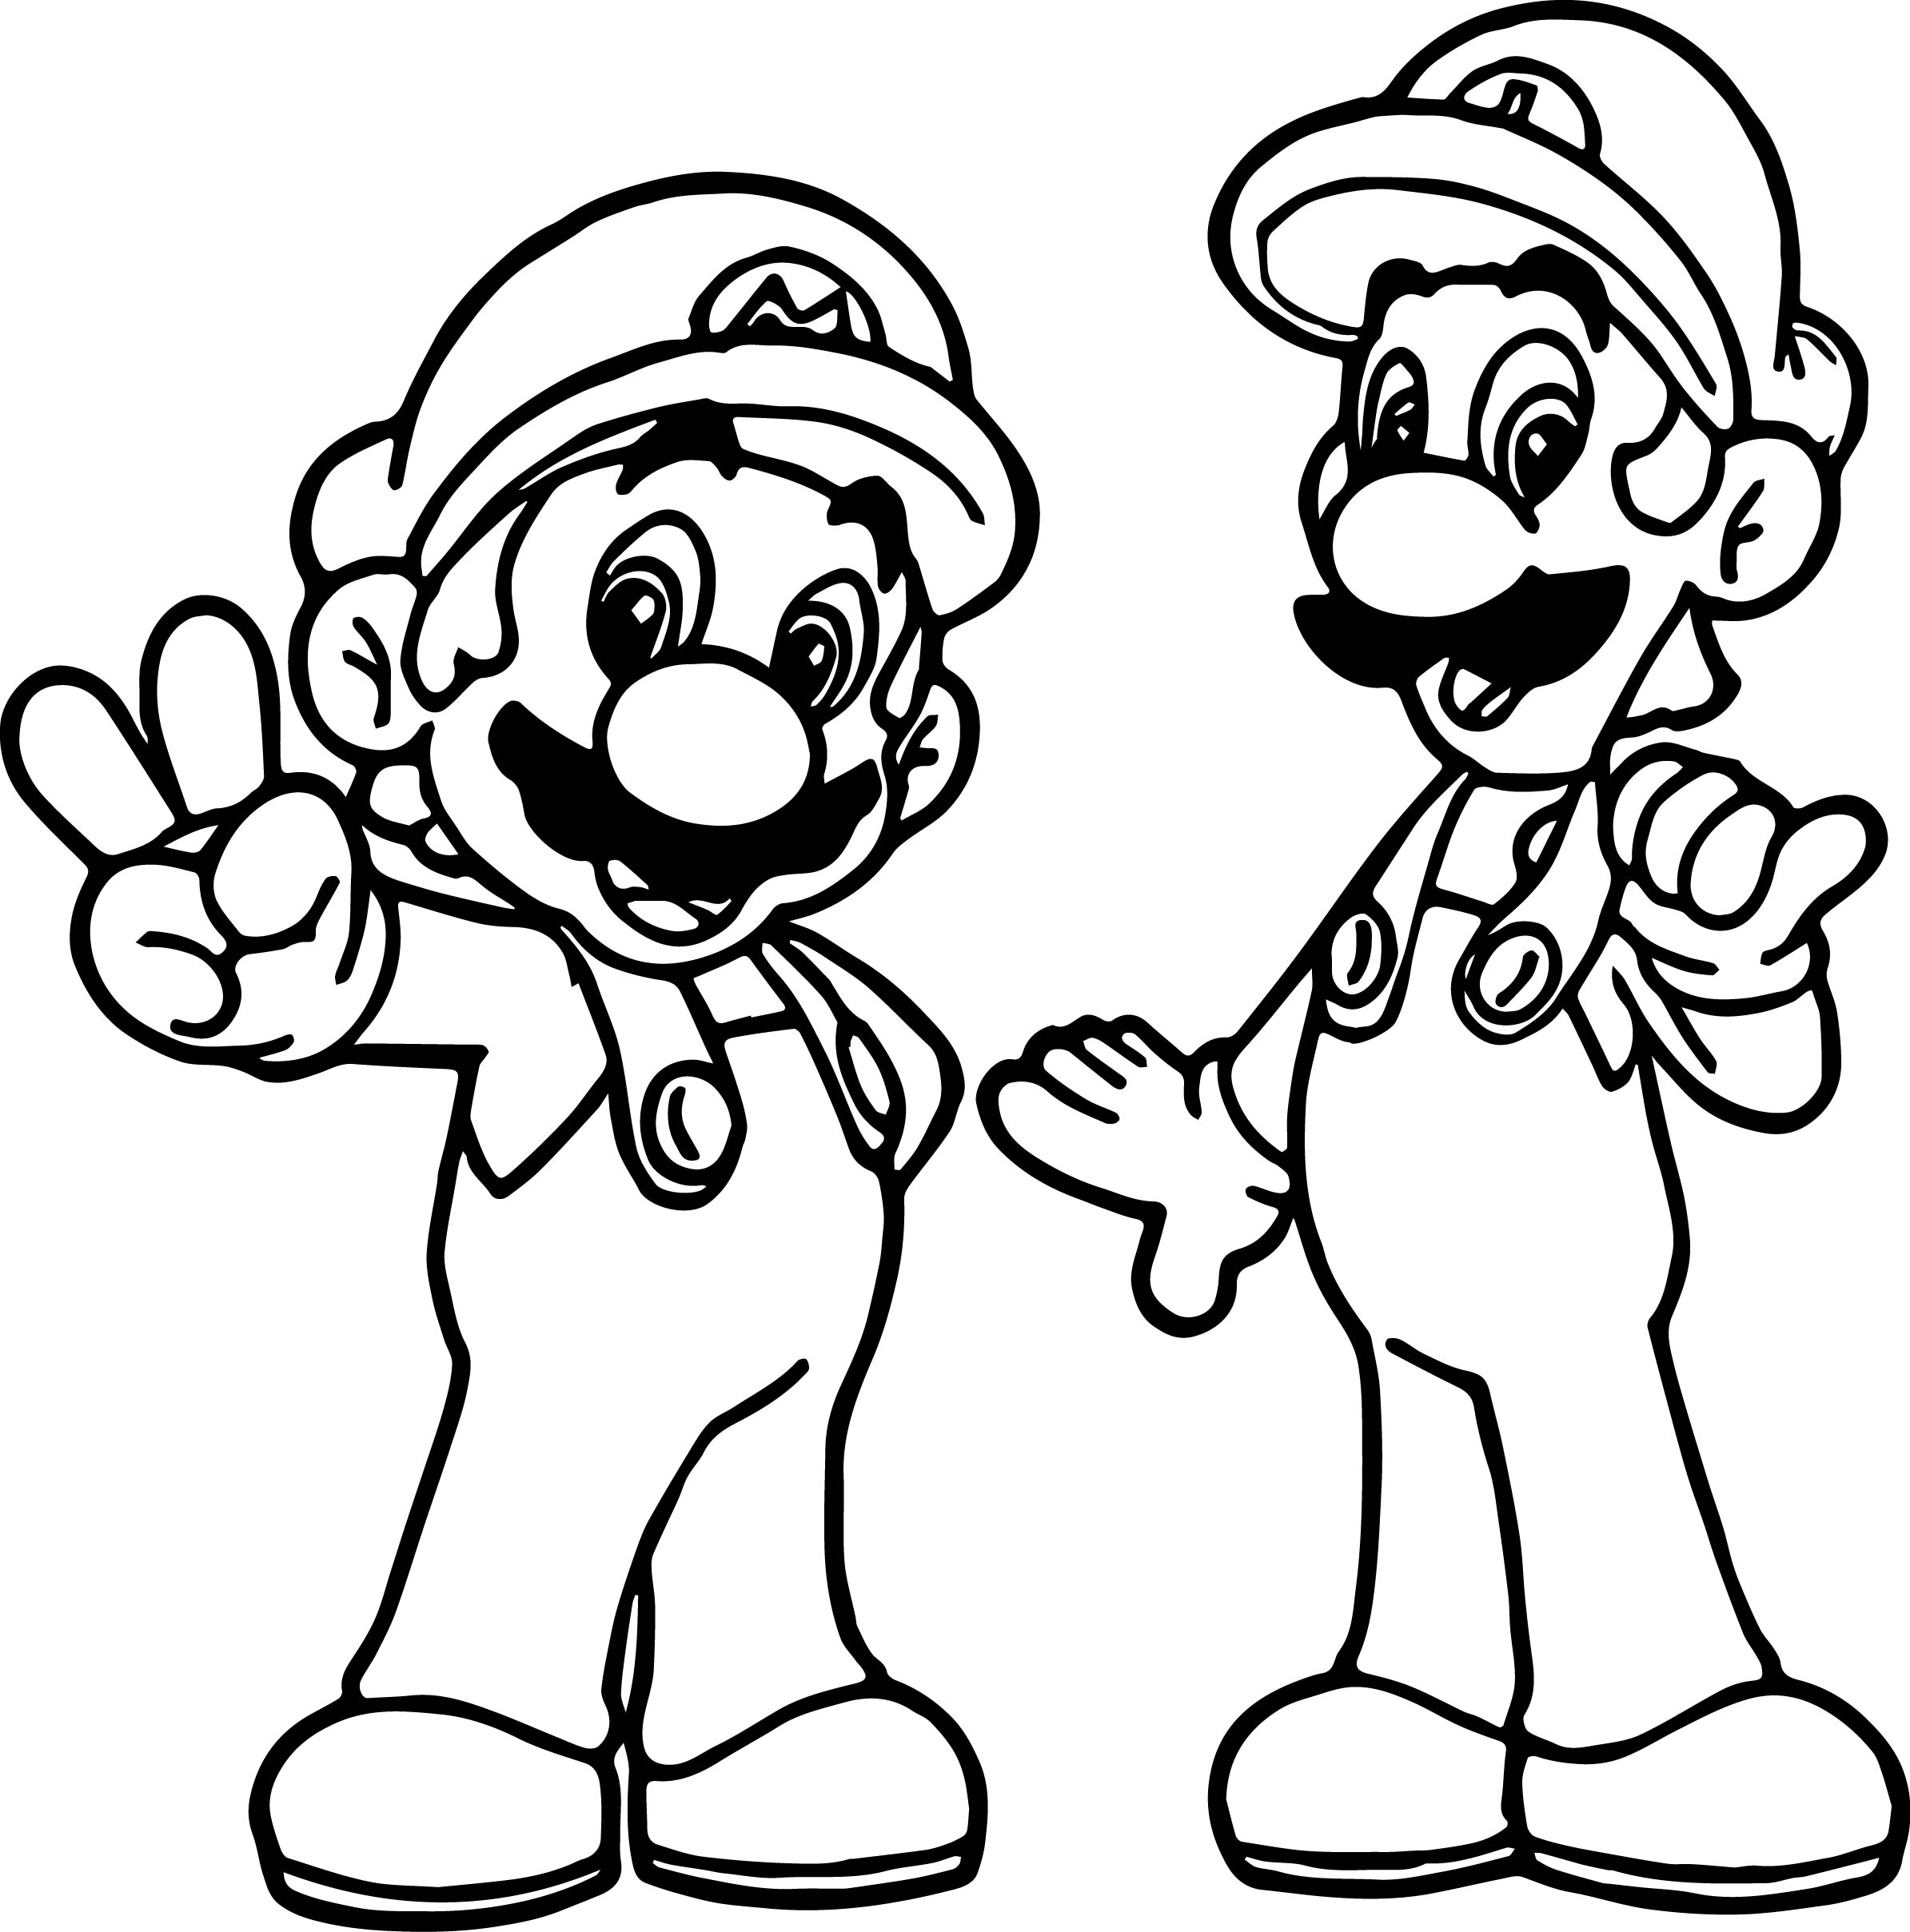 Super Mario And Luigi All Right Coloring Page Wecoloringpage